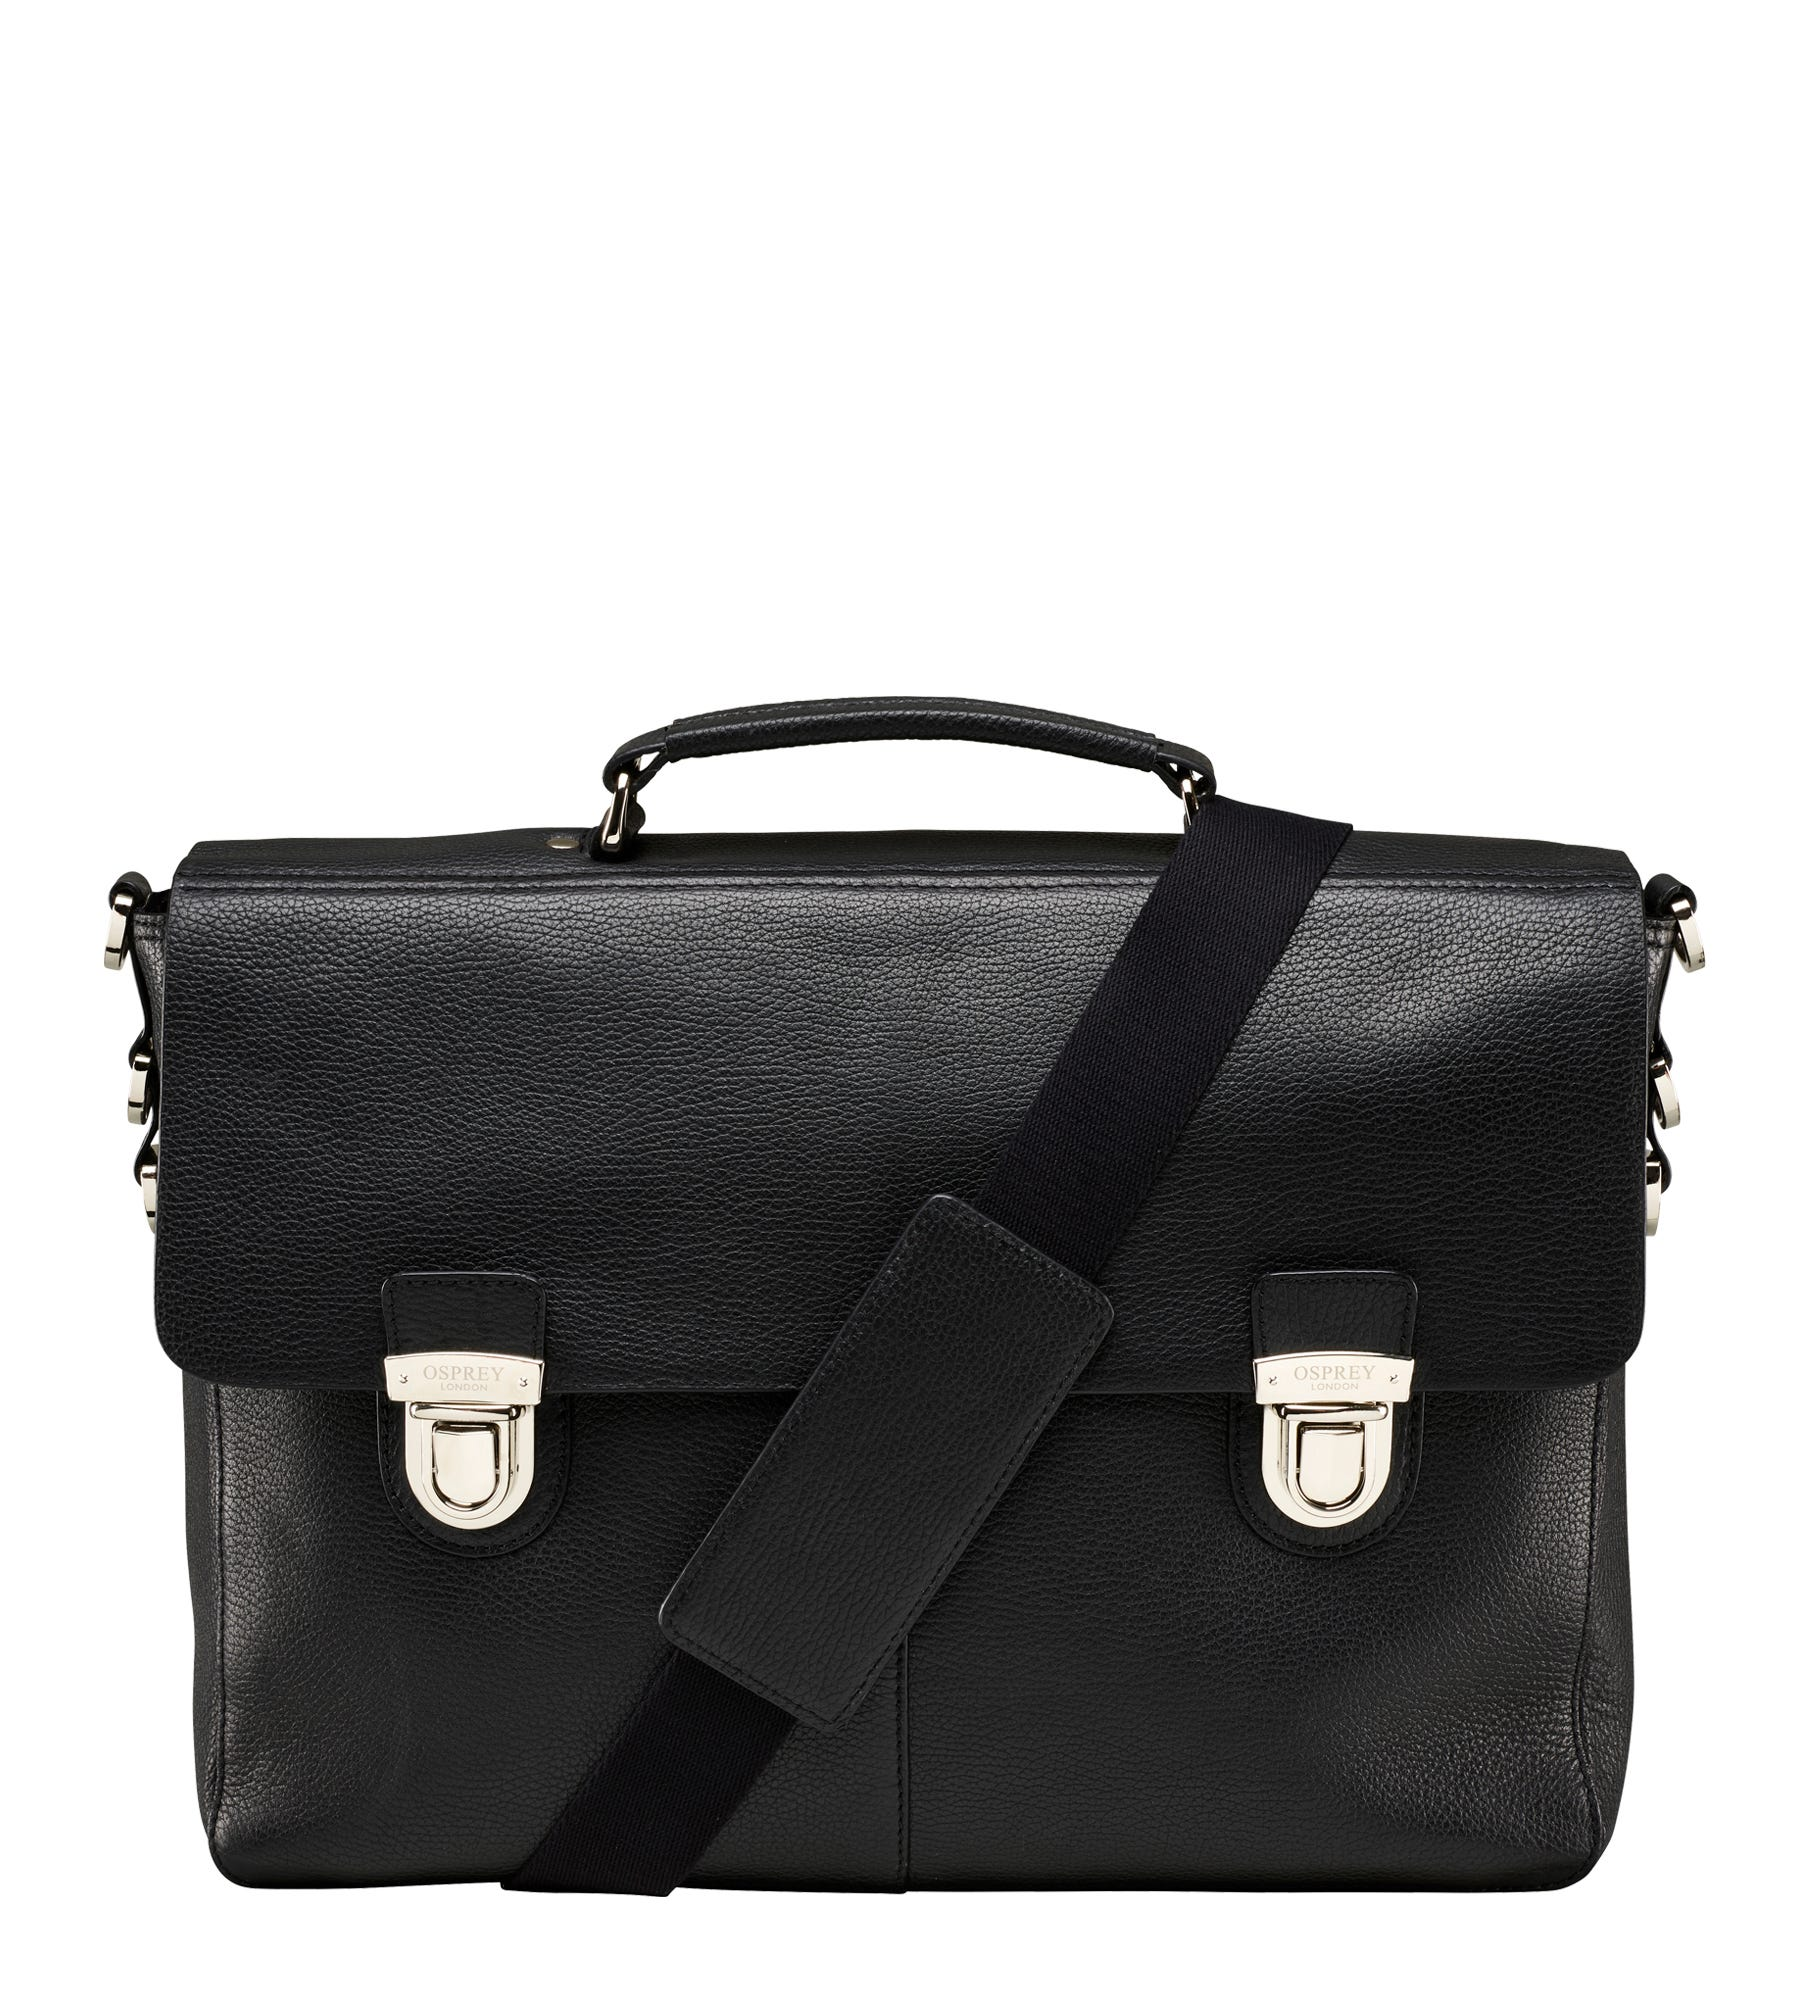 An image of The Frankie Leather Briefcase